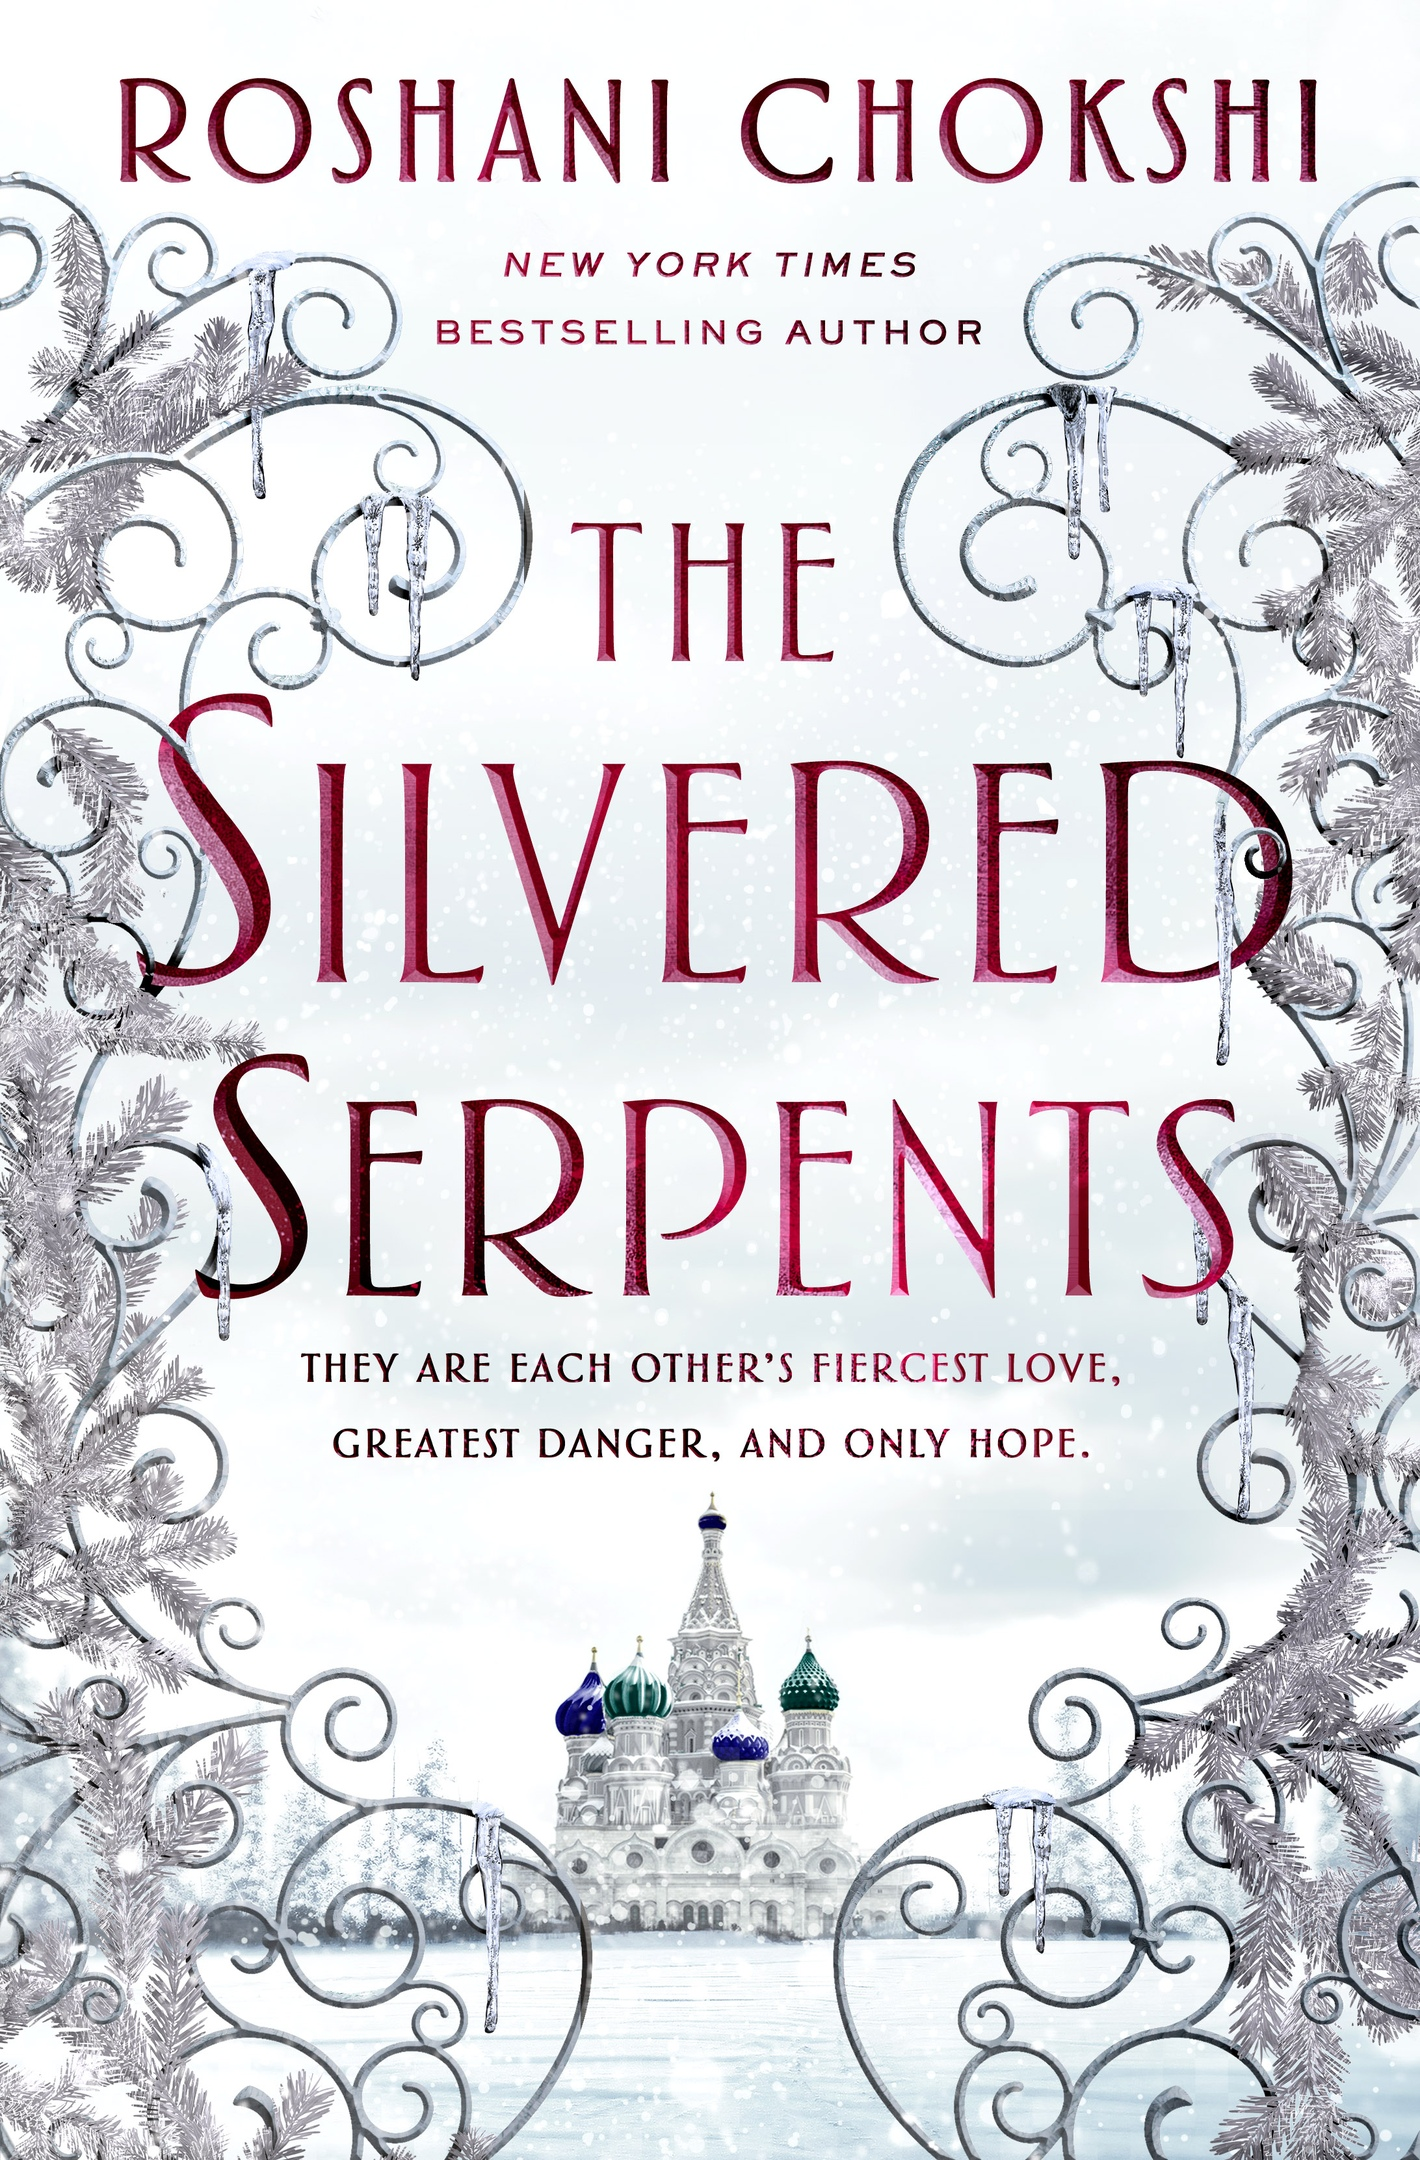 When Does The Silvered Serpents Come Out? 2020 Book Release Dates